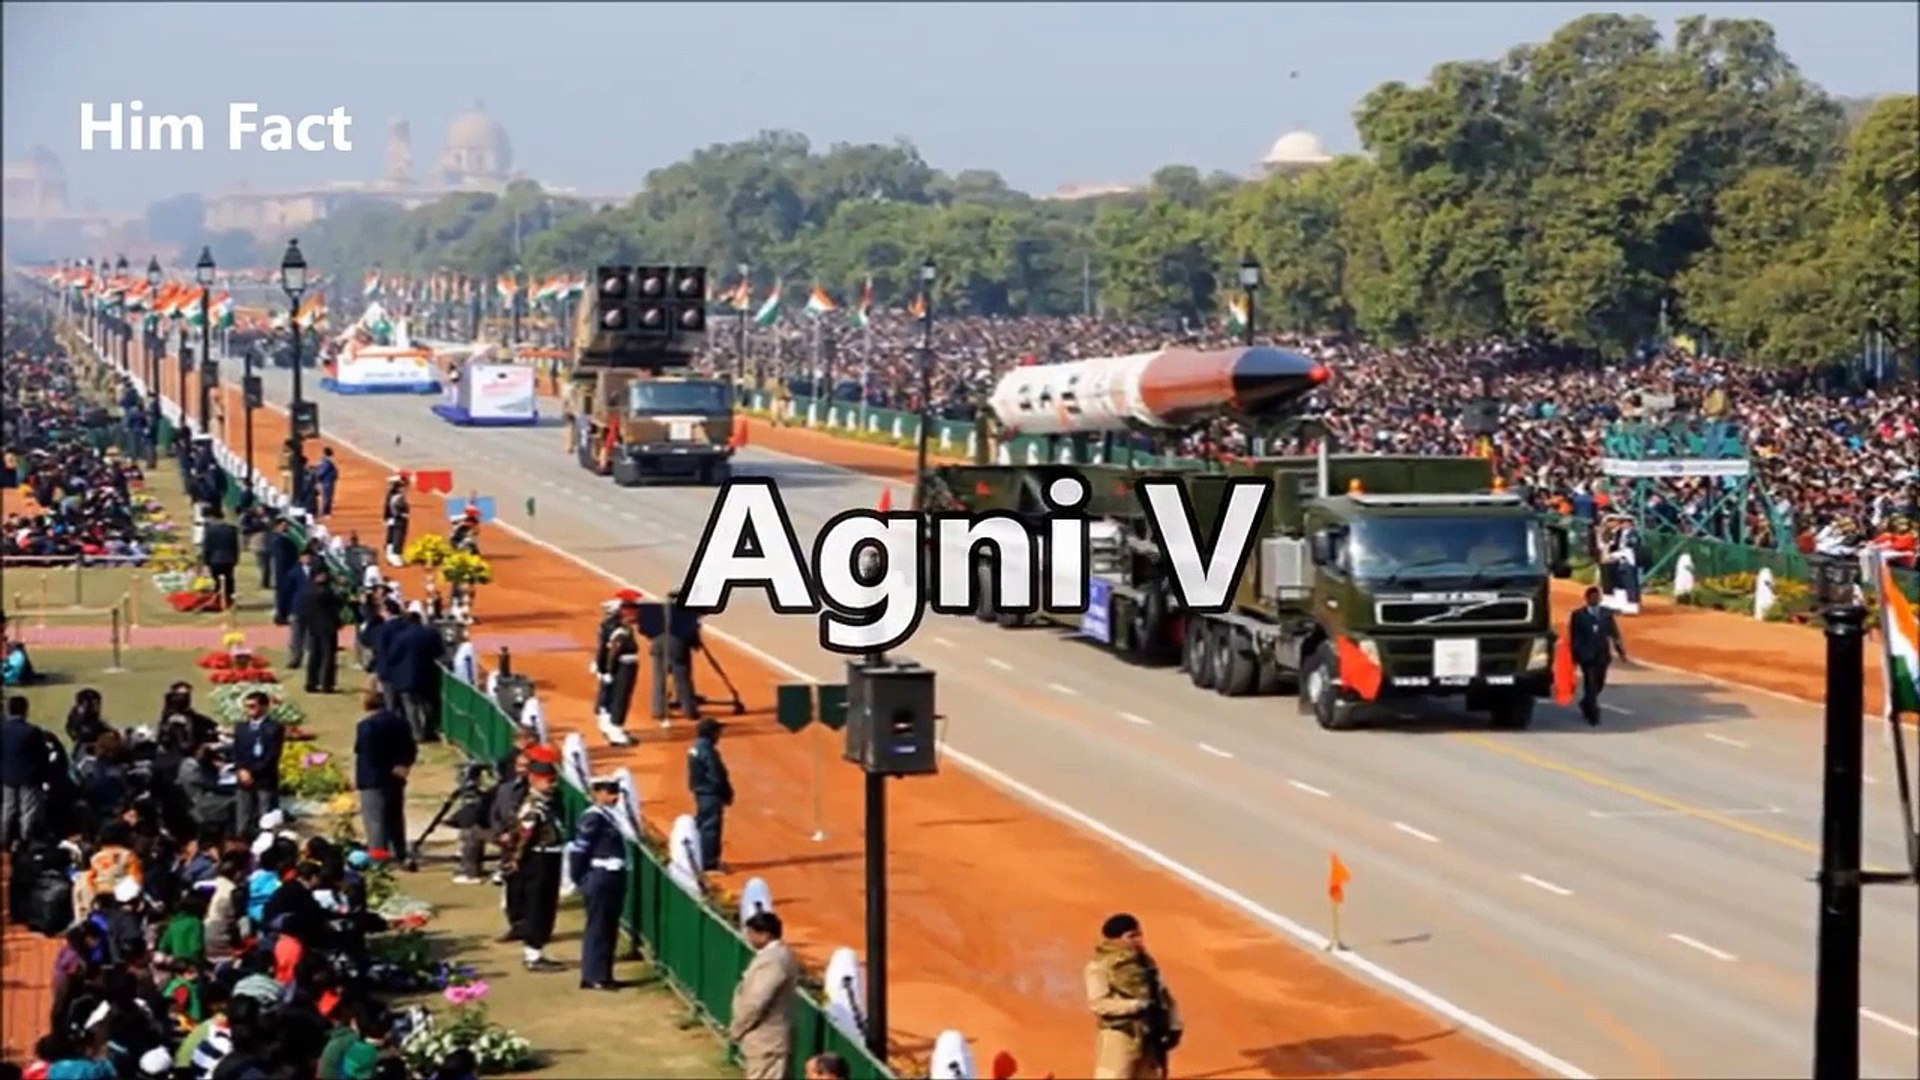 Top 10 Most Powerful Weapons of India may use in Case of War   All Weapons with details